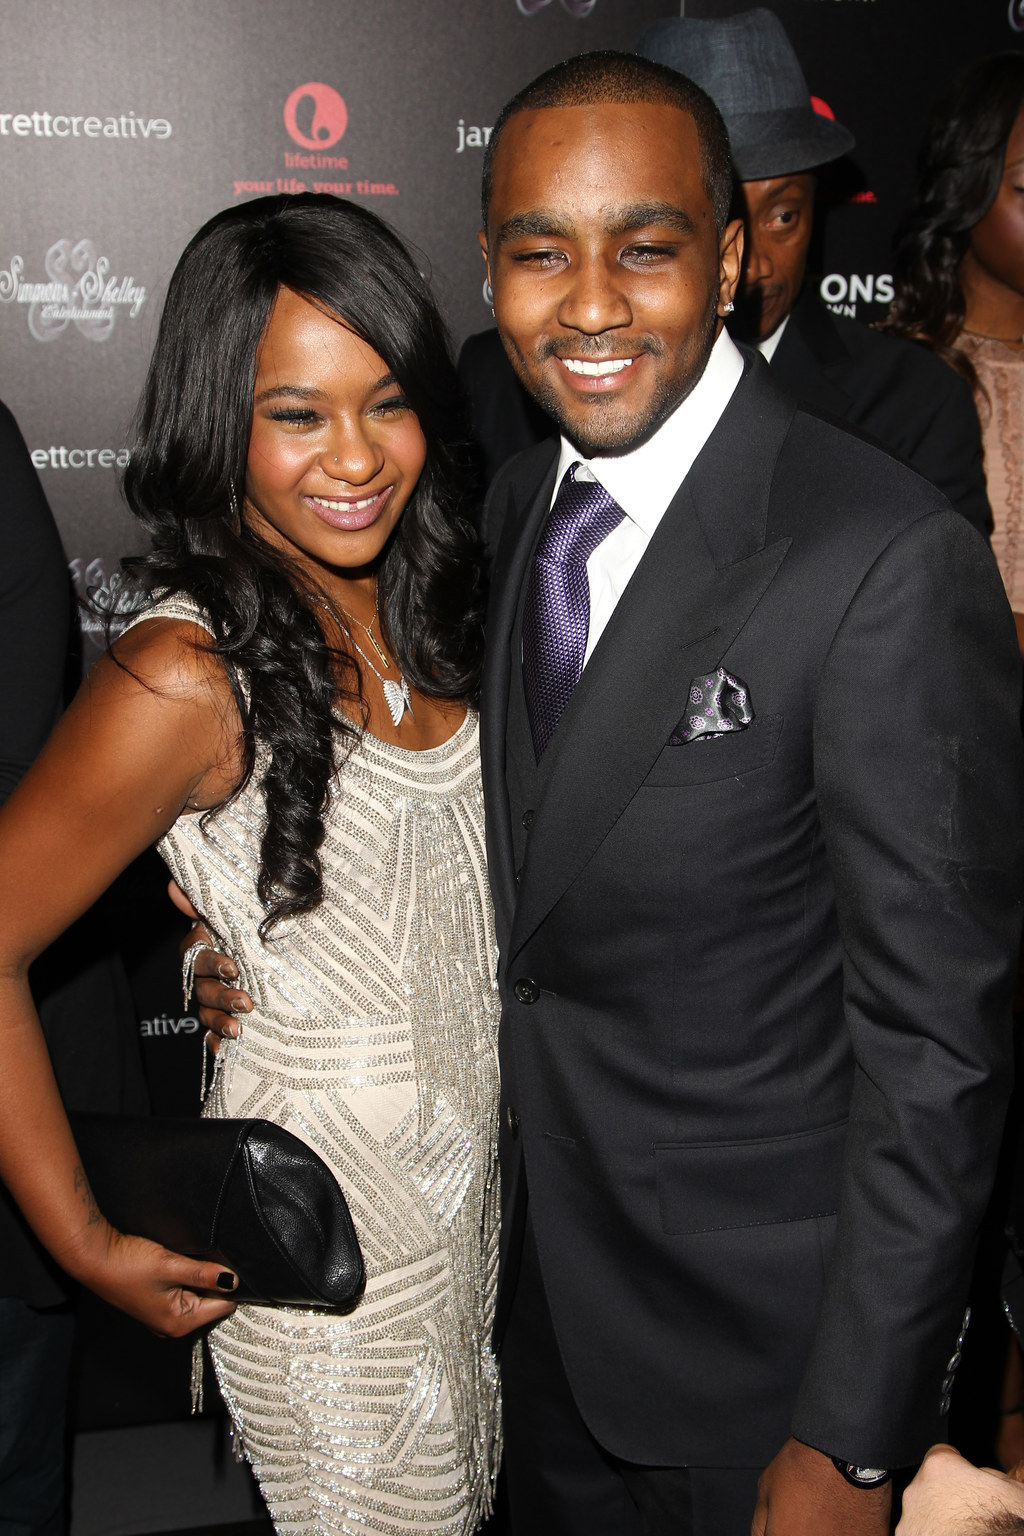 Bobbi Kristina Brown Moved To Rehab Facility, But Condition Unchanged